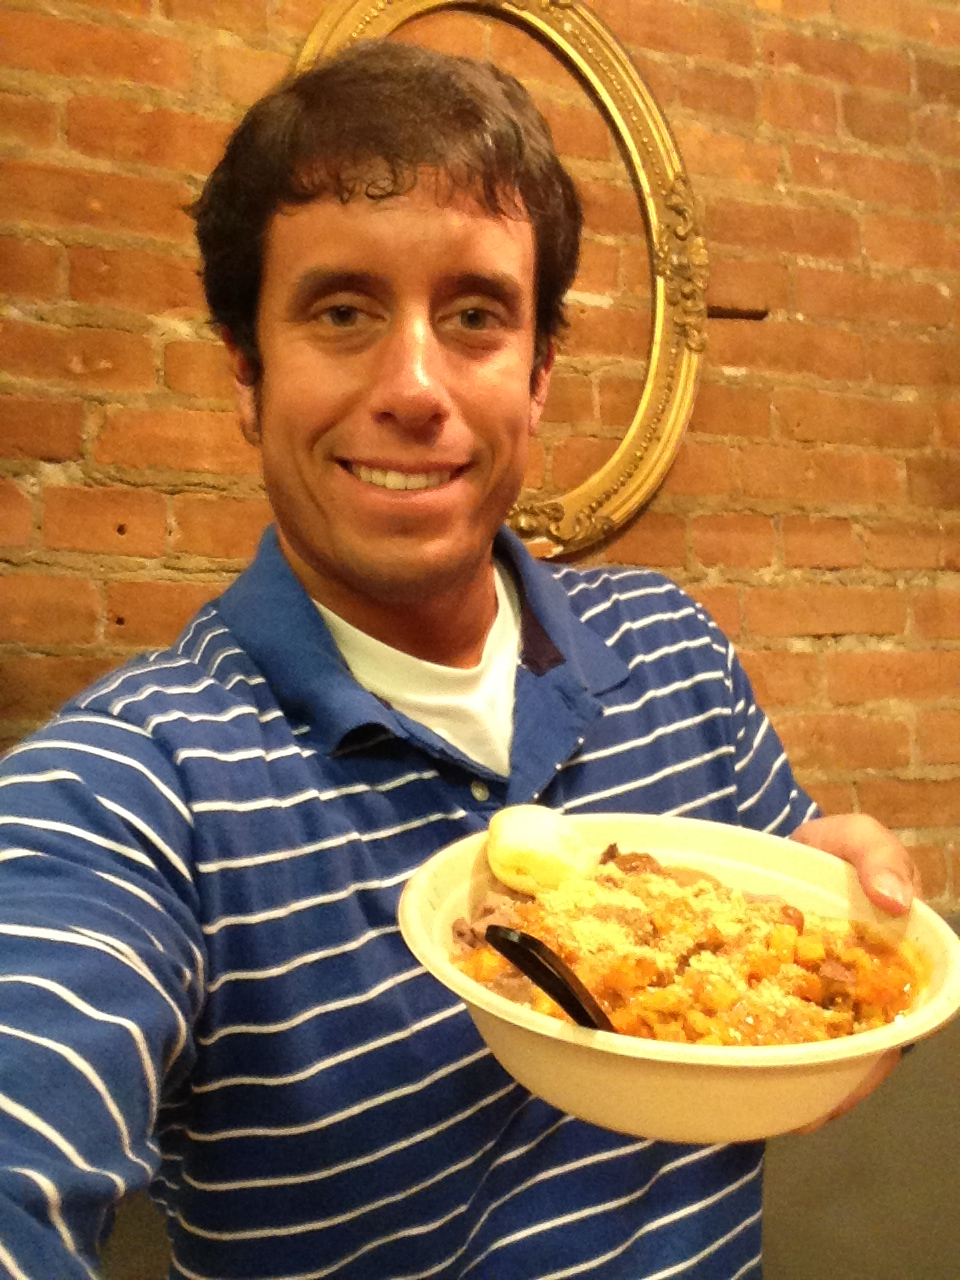 I was a happy guy with my big bowl of Brazilian food.